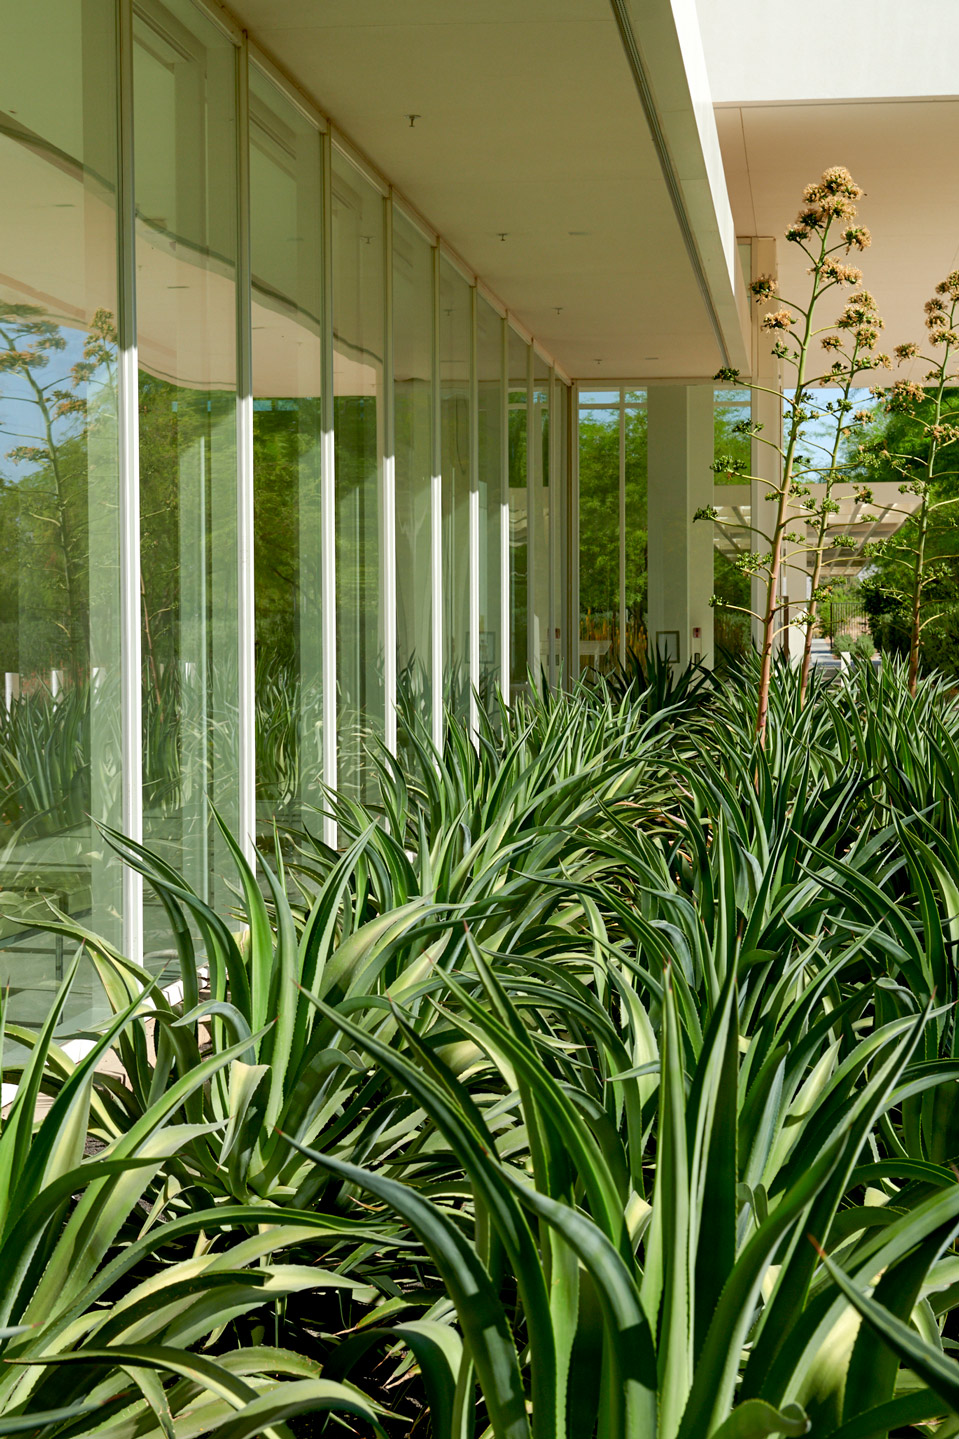 A grouping of Smooth Agave along the Exhibition Gallery window of Sunnylands Center & Gardens.